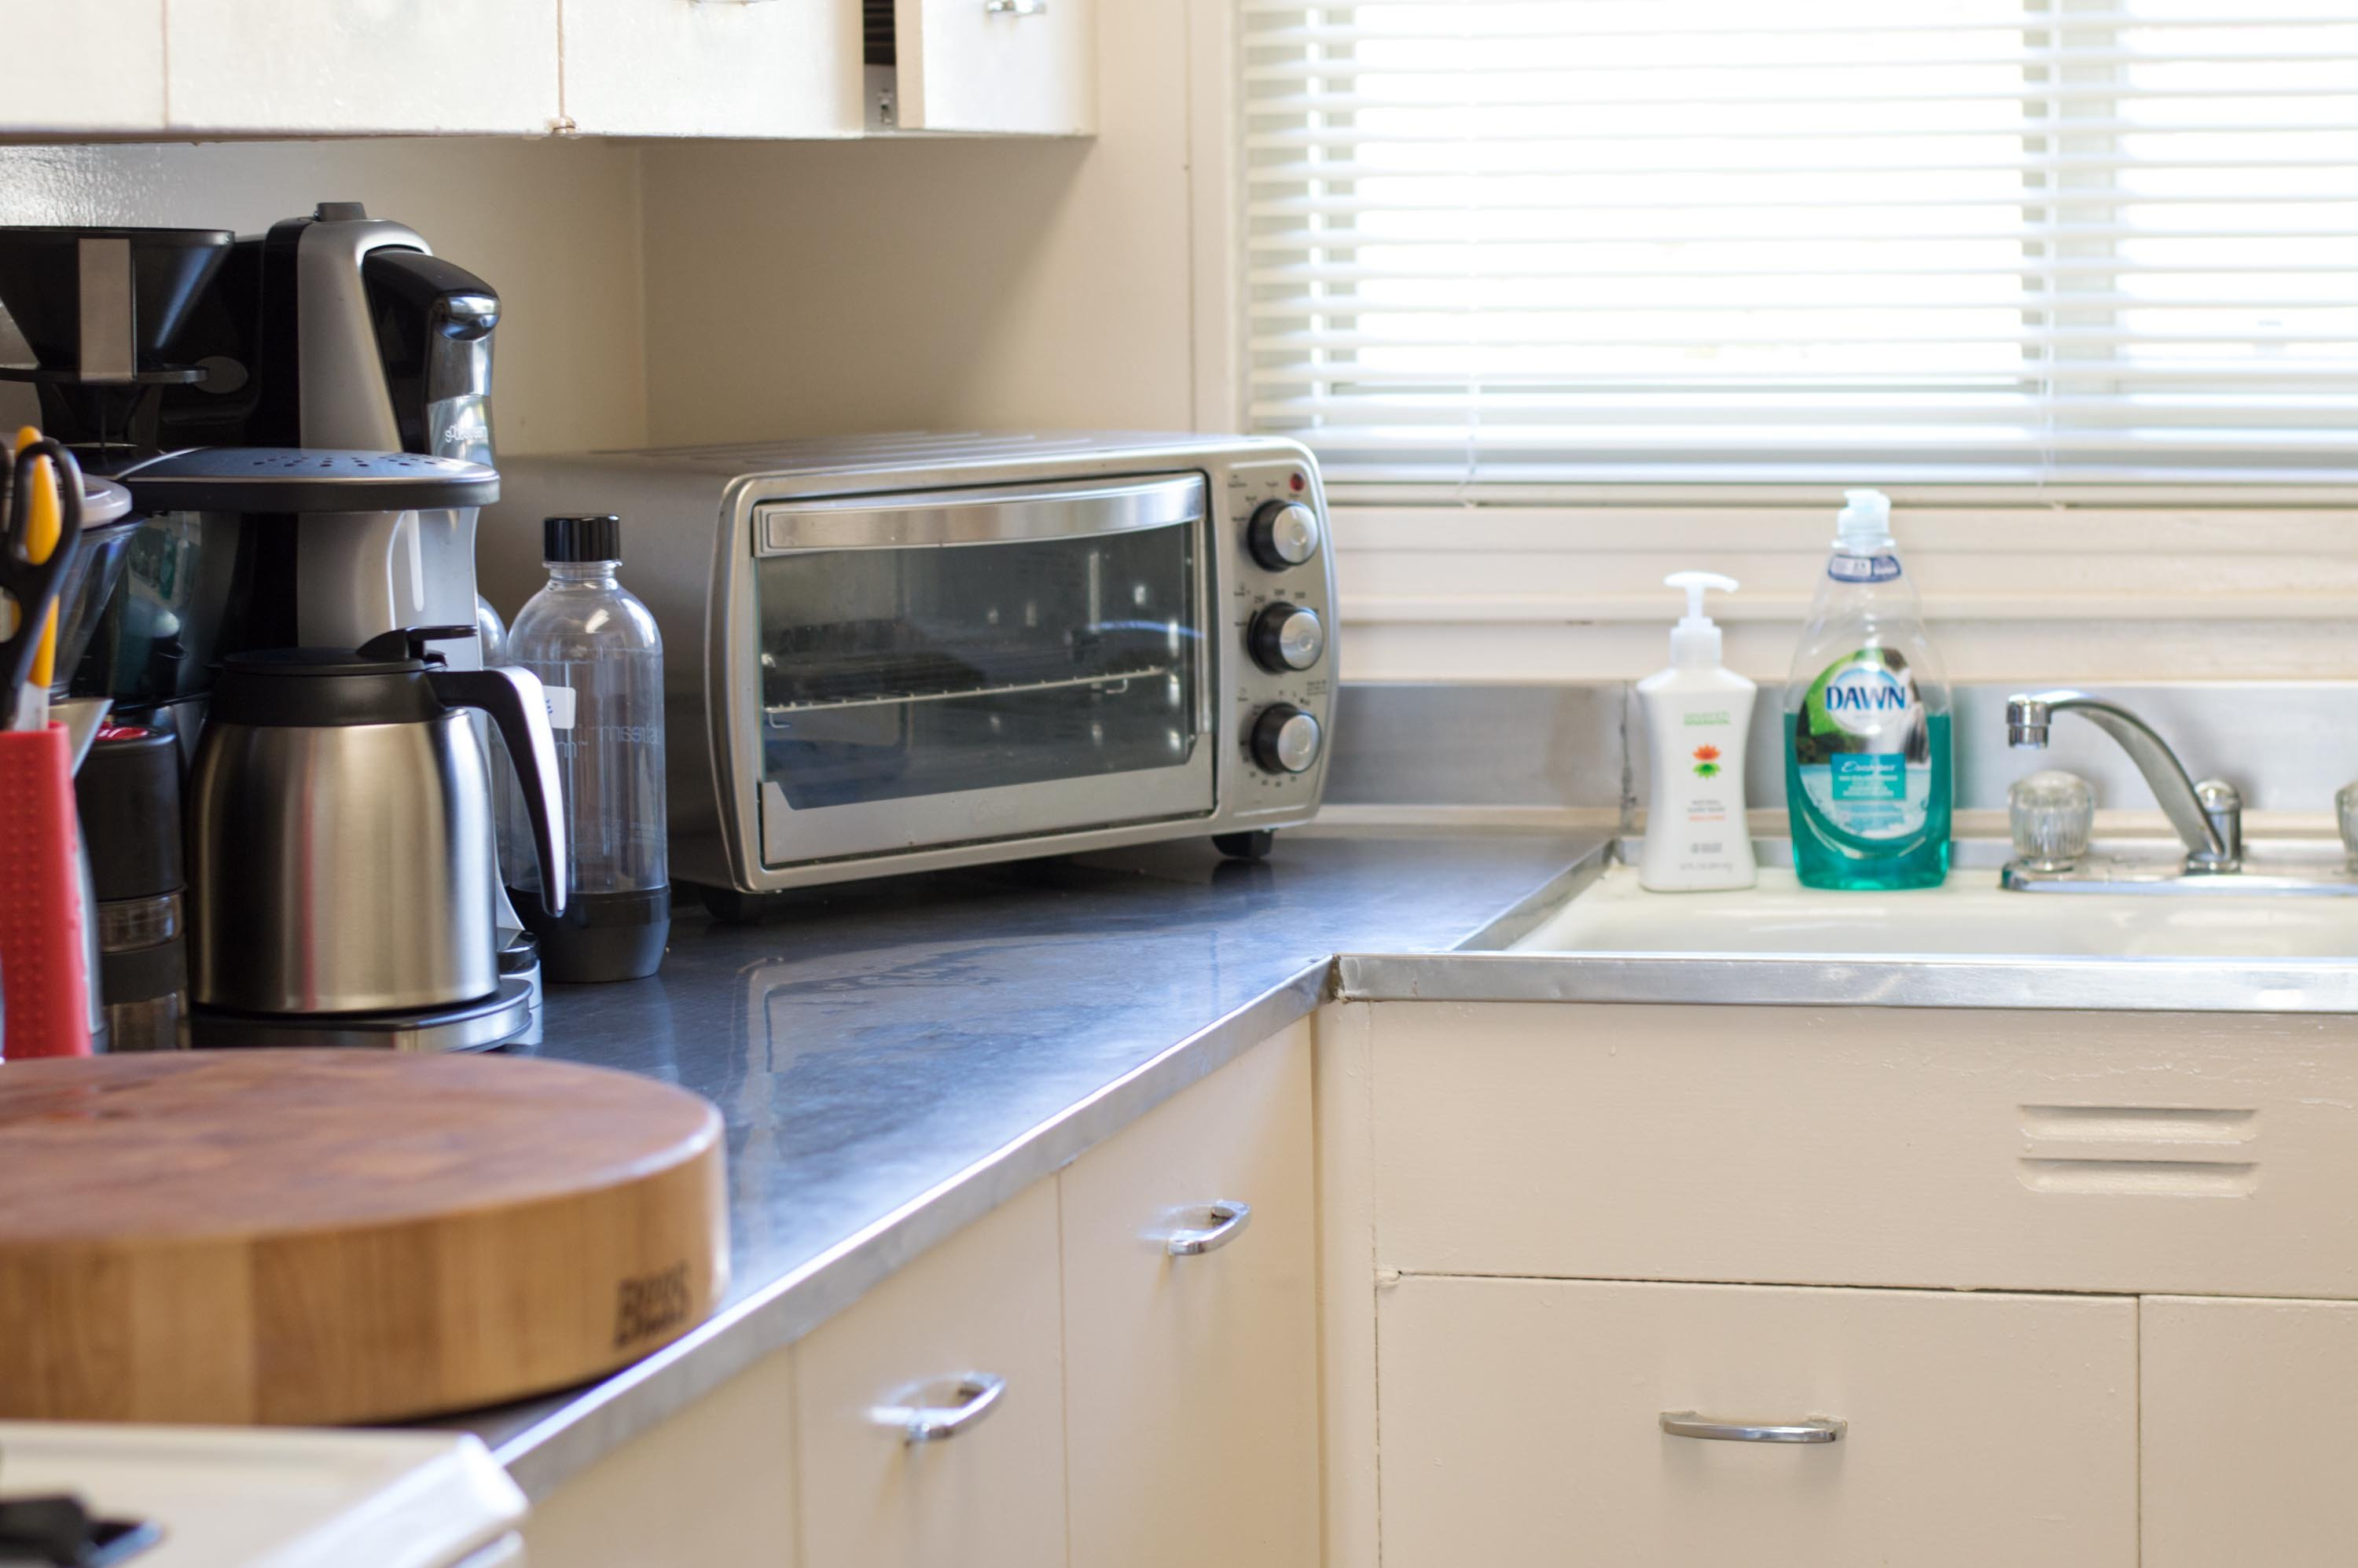 How To Clean Stainless Steel Countertops To a Shiny Streak-Free Finish & How To Clean Stainless Steel Countertops To a Shiny Streak-Free ...